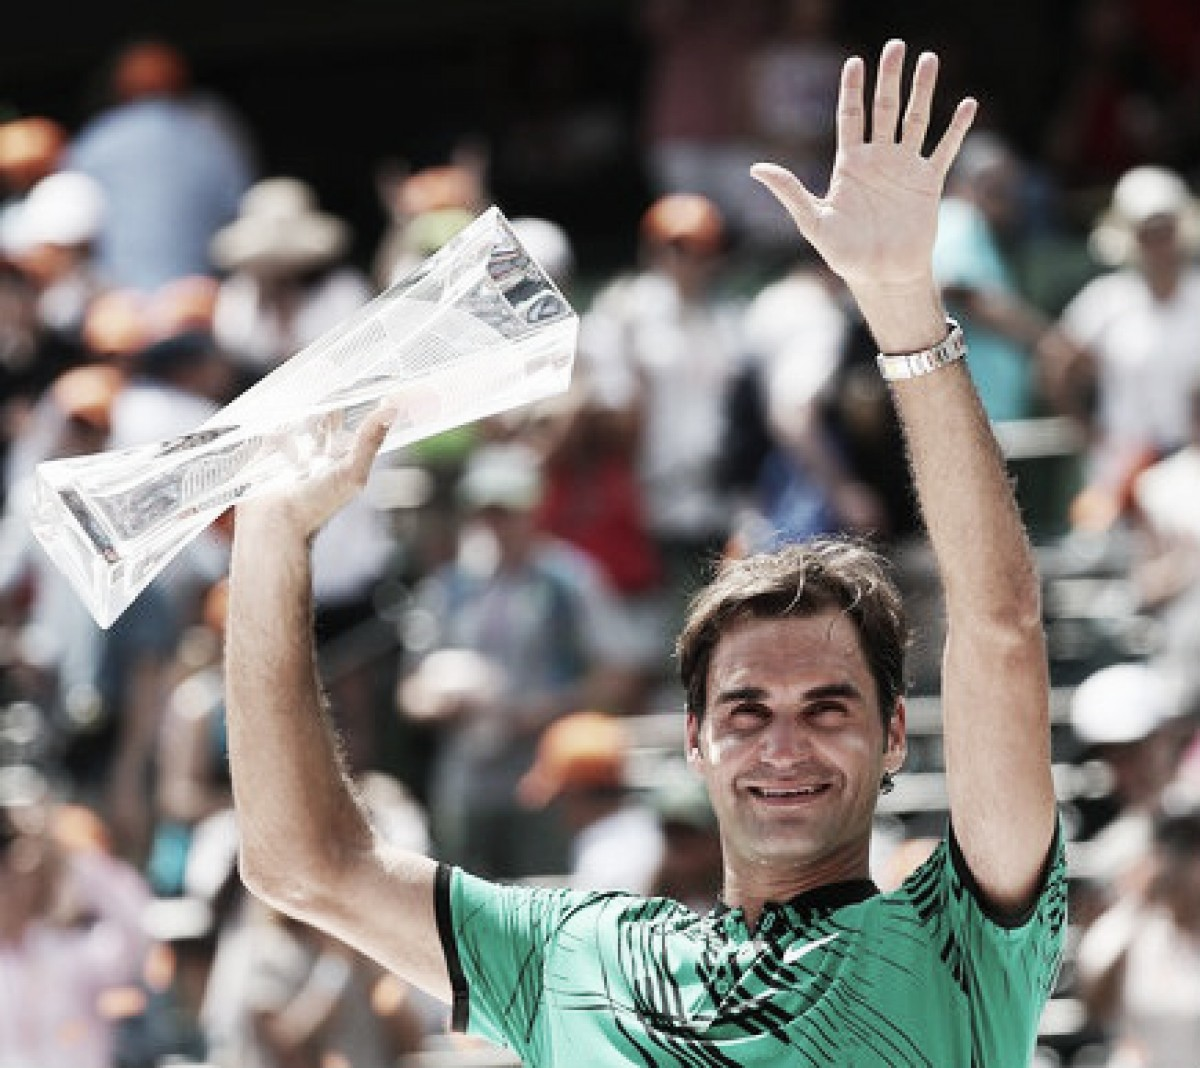 2018 Miami Open: Men's singles preview and predictions